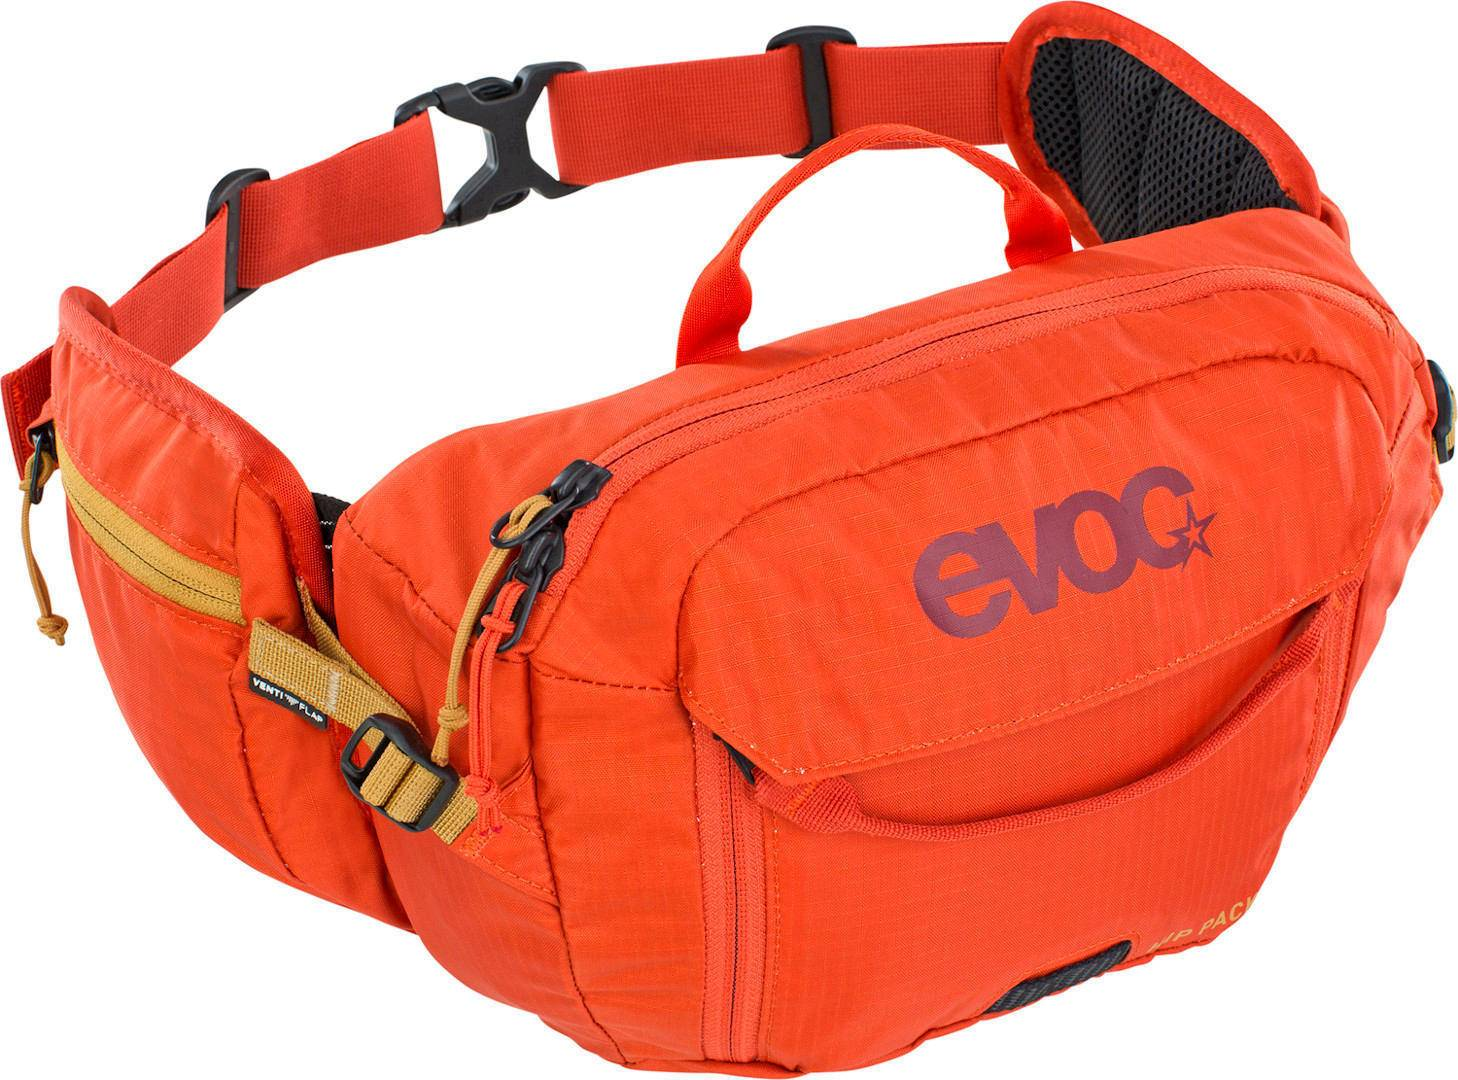 Evoc Hip Pack 3L Sac de hanche Orange taille : 0-5l